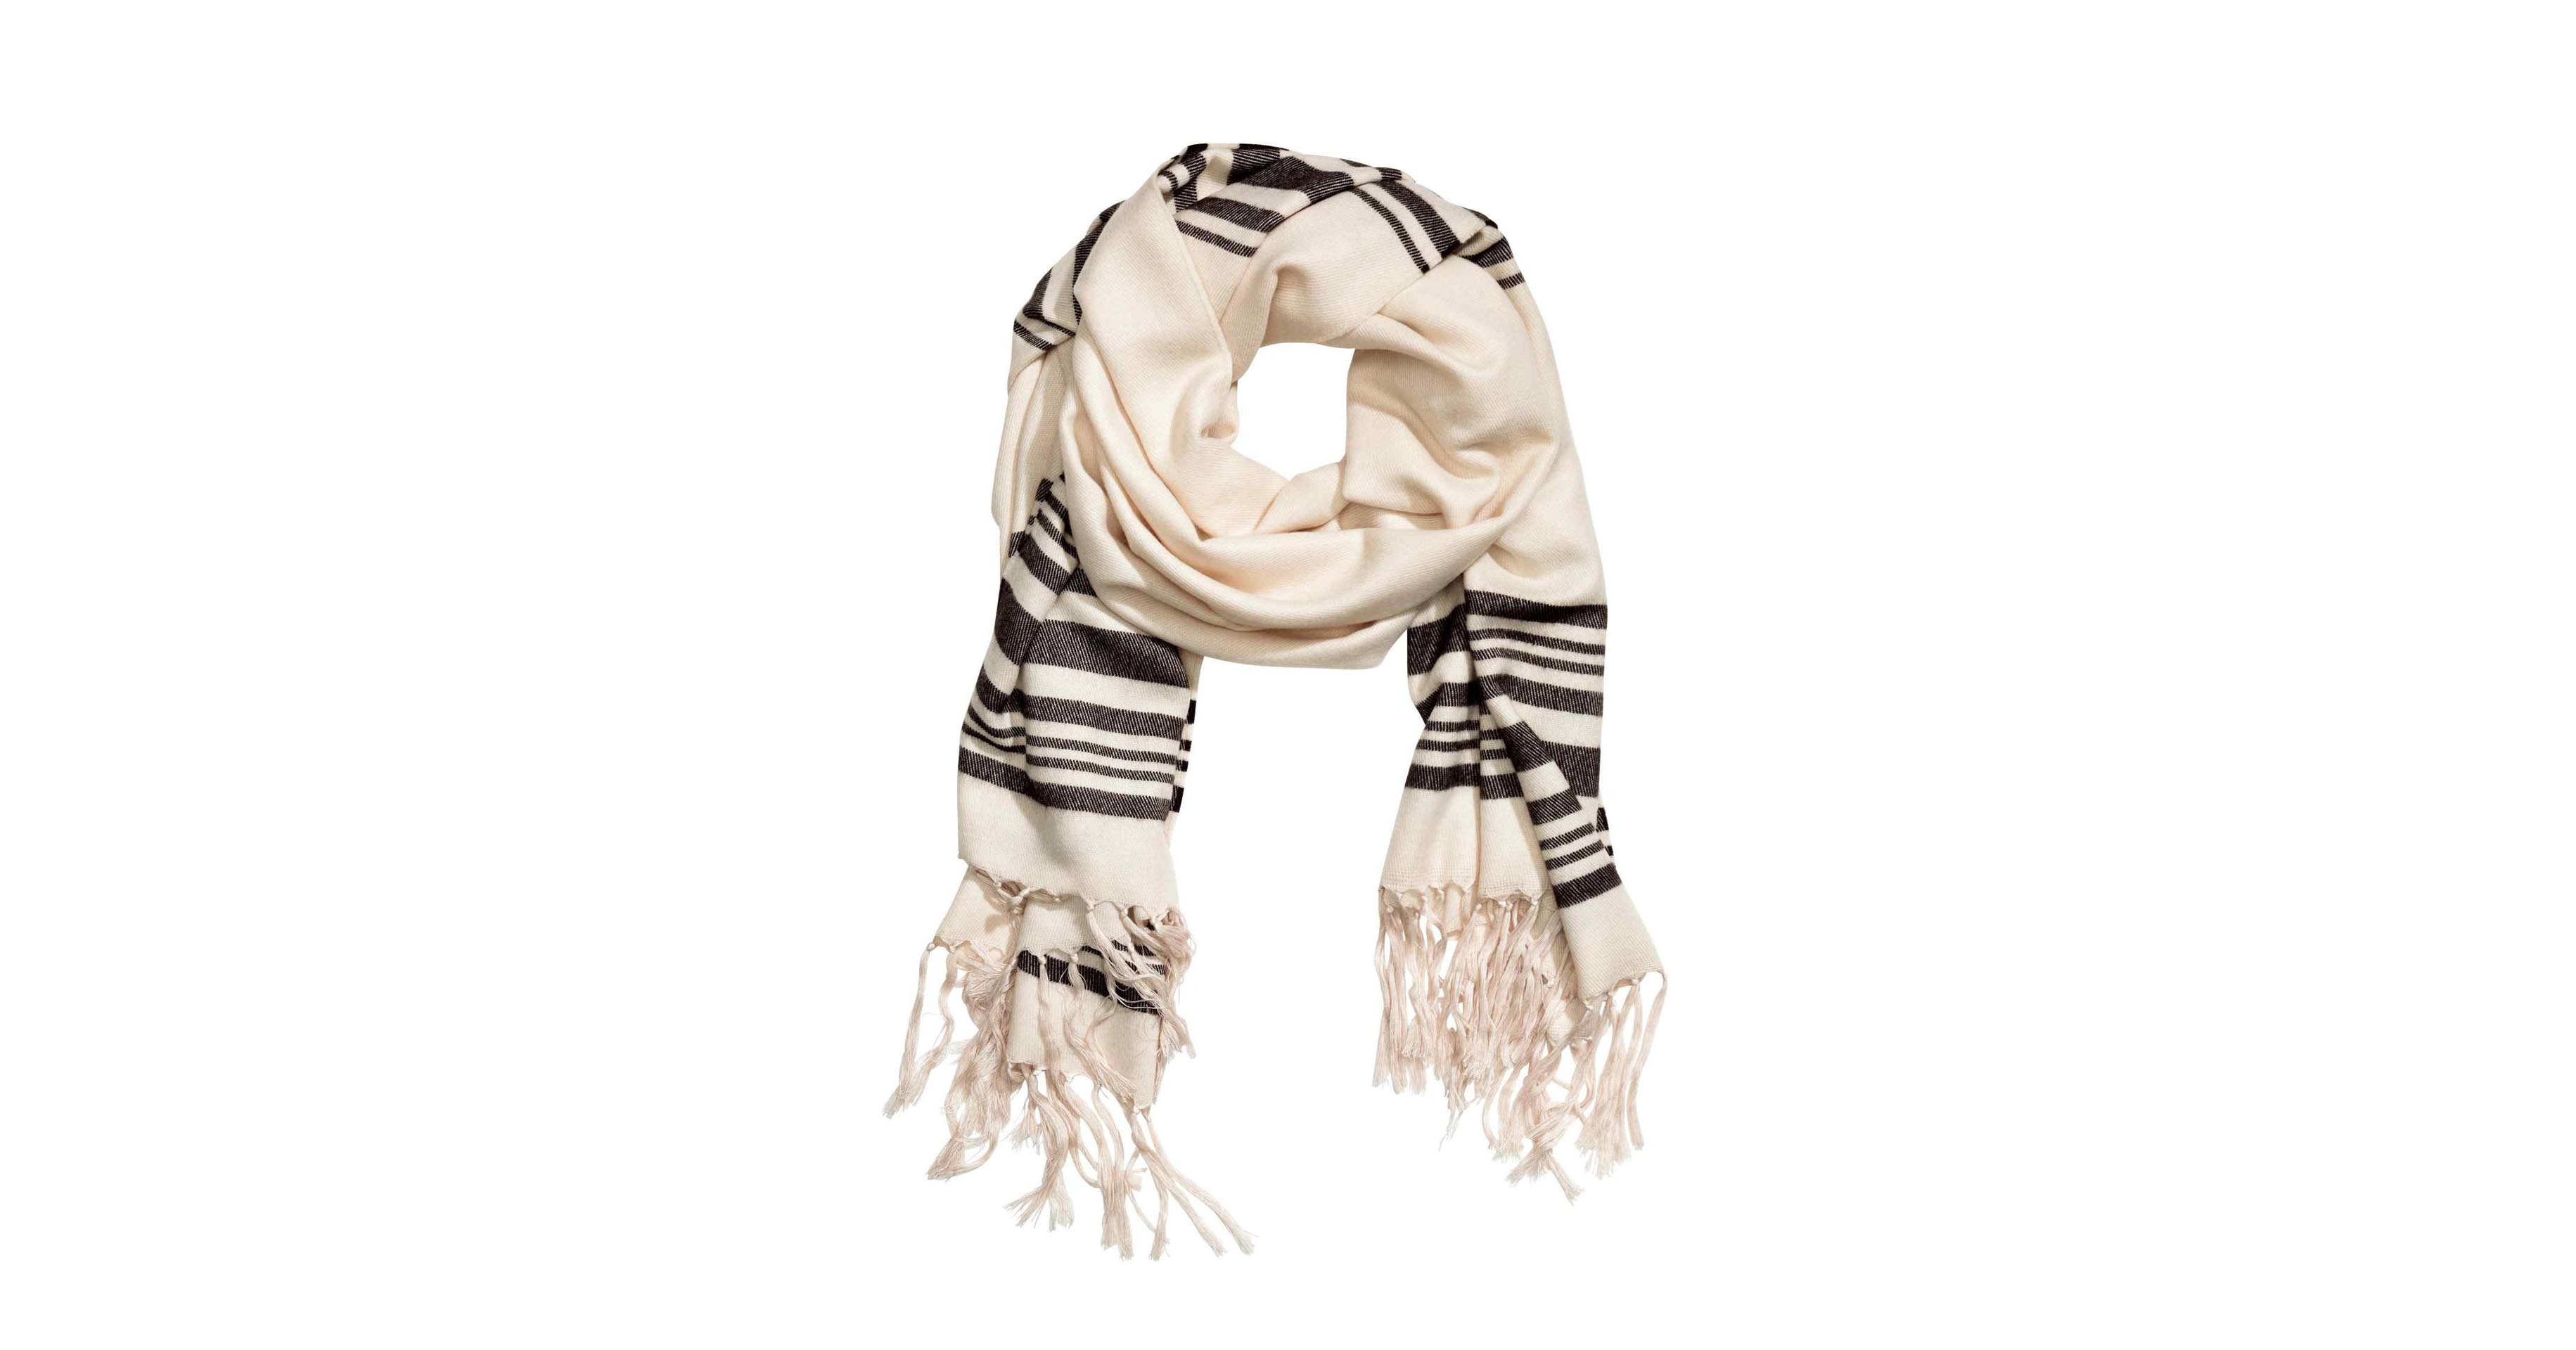 Global retailer H&M have apologised after producing a striped scarf that spurred controversy on social media with users saying it is a copy of a Tallit, the Jewish prayer shawl.